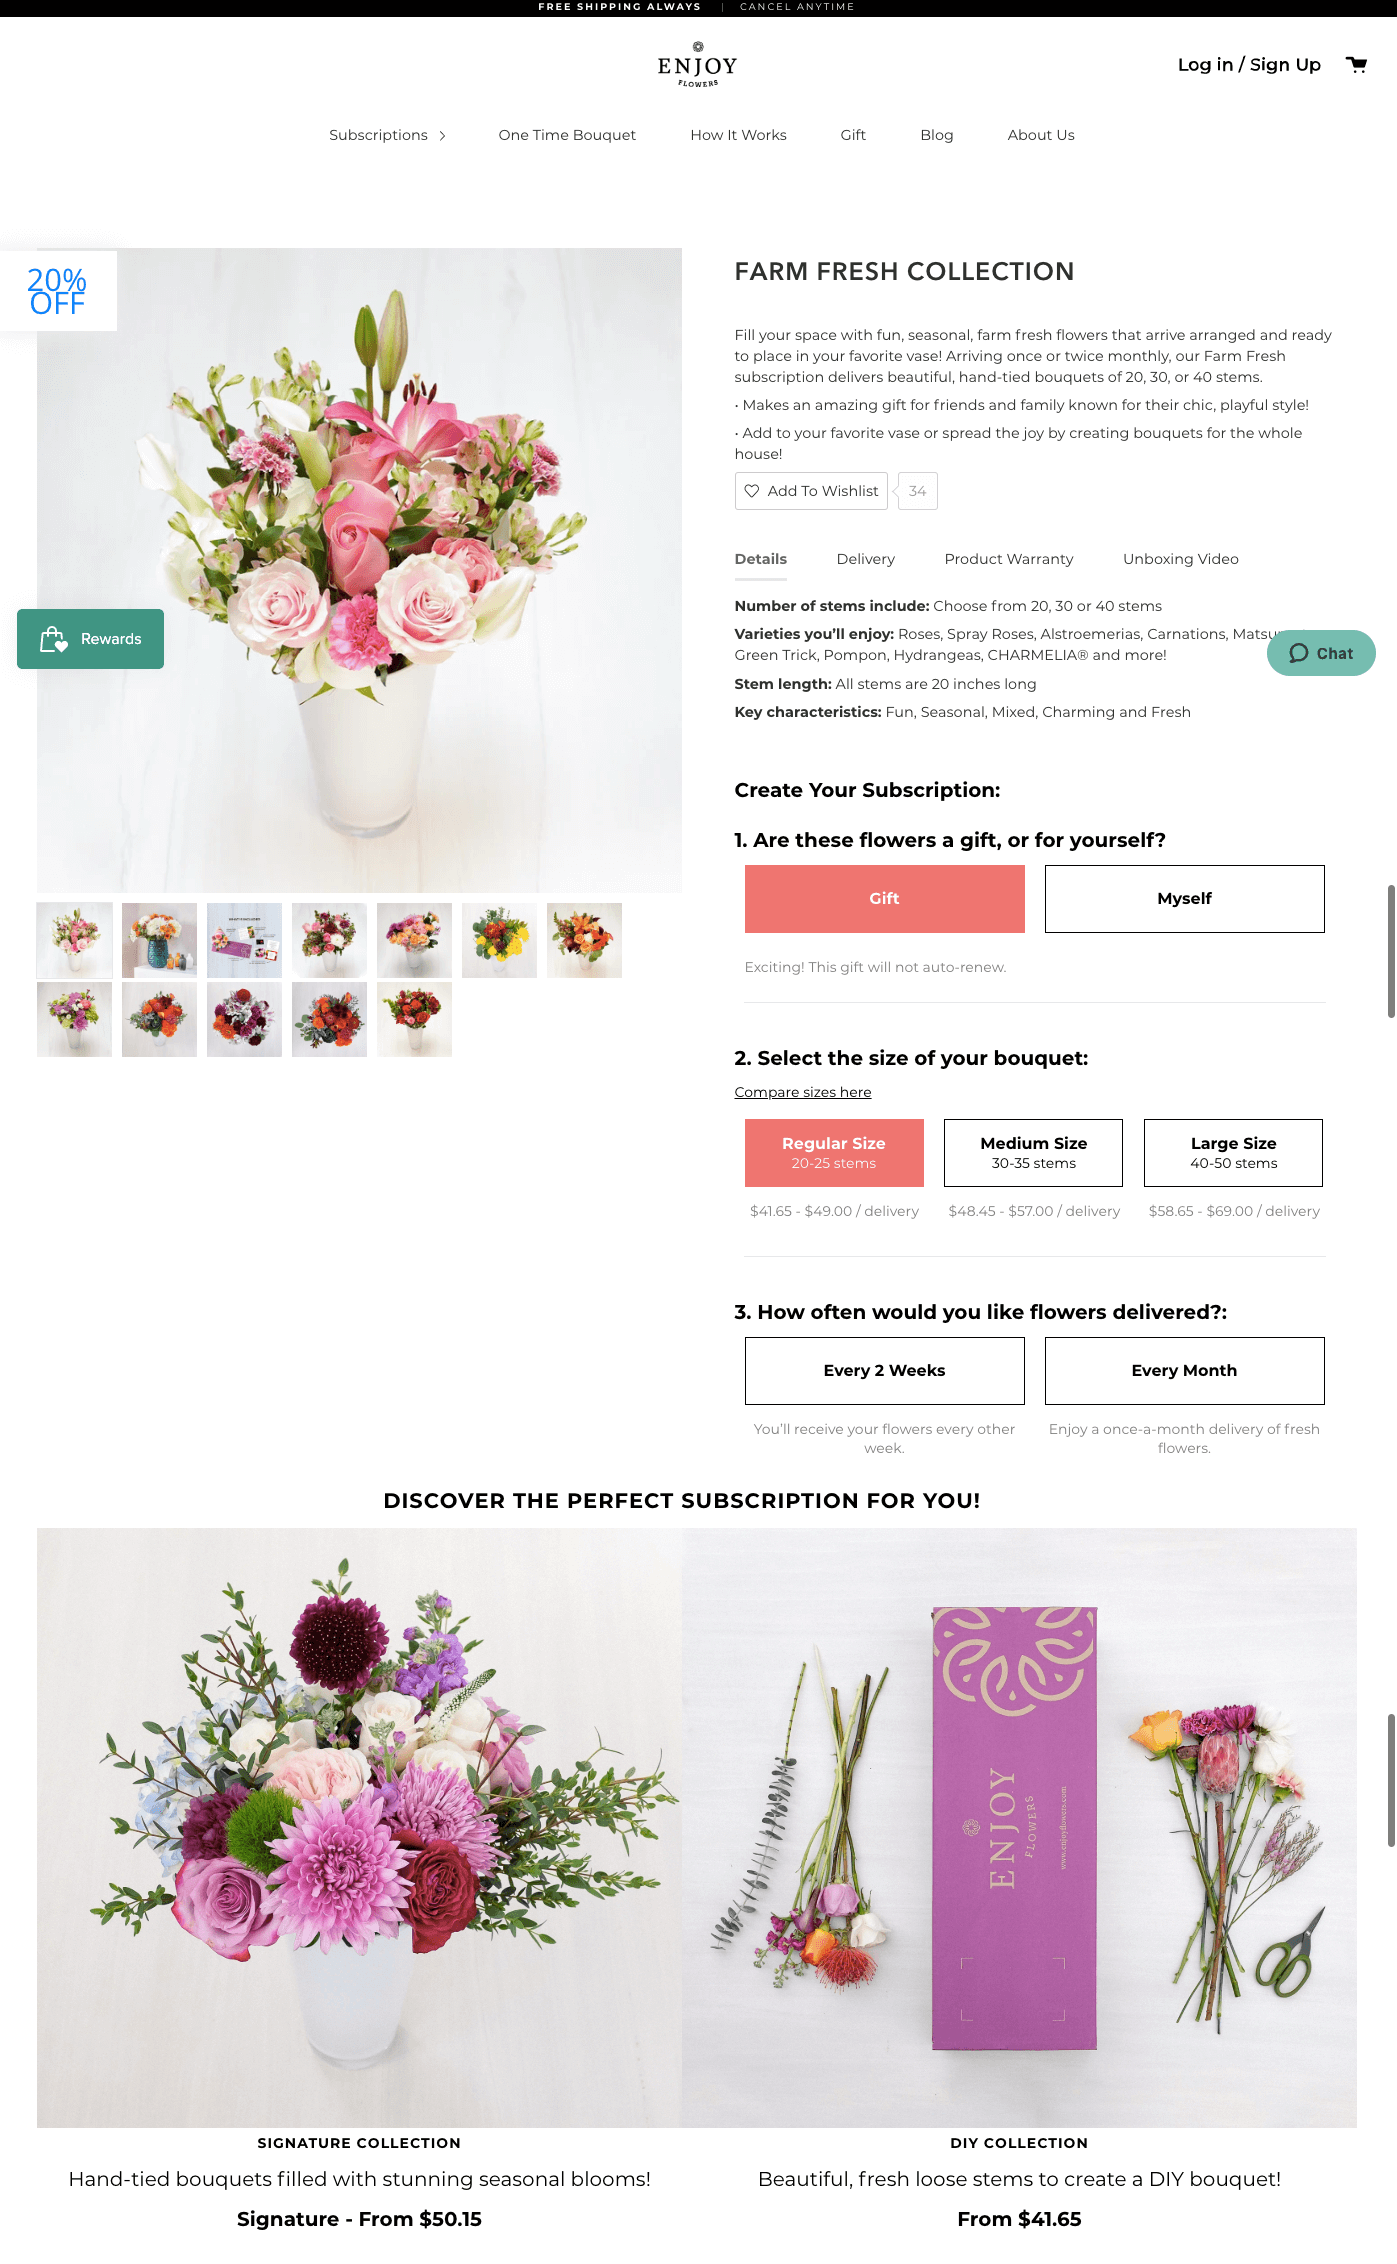 customer retention campaigns - enjoy flowers subscriptions